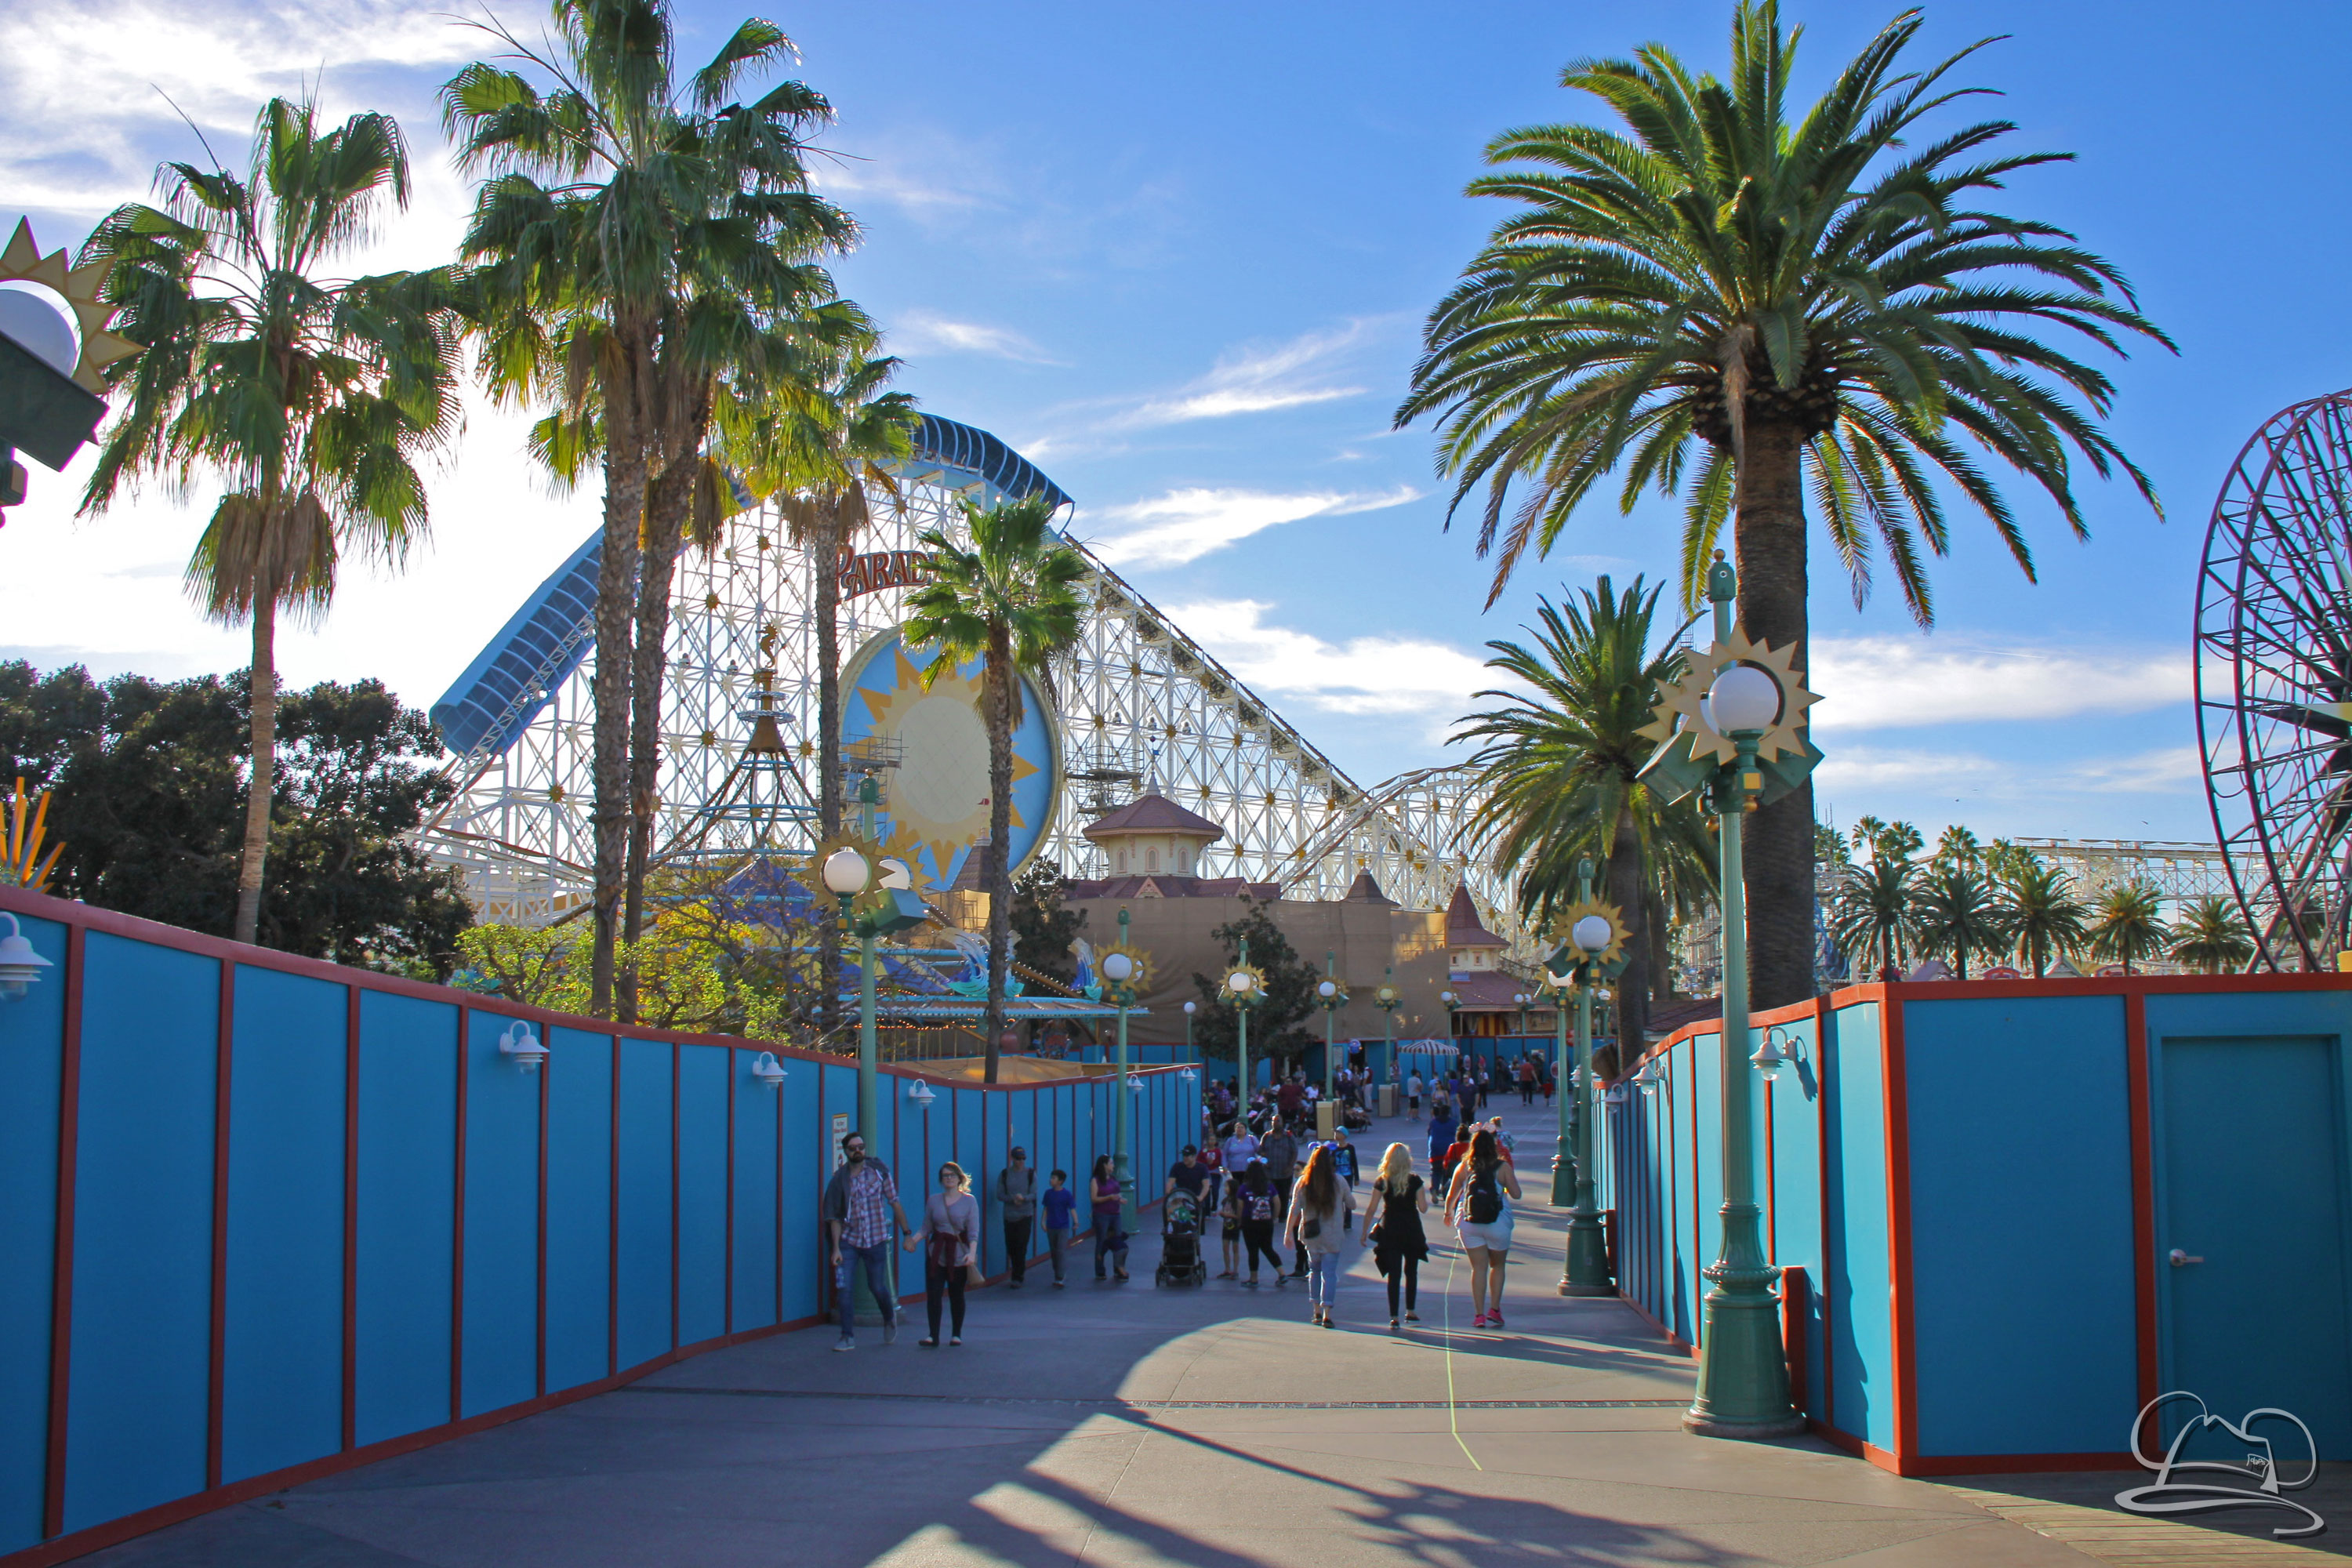 Walls of Change – Why The Disneyland Resort Only Gets Better With Them